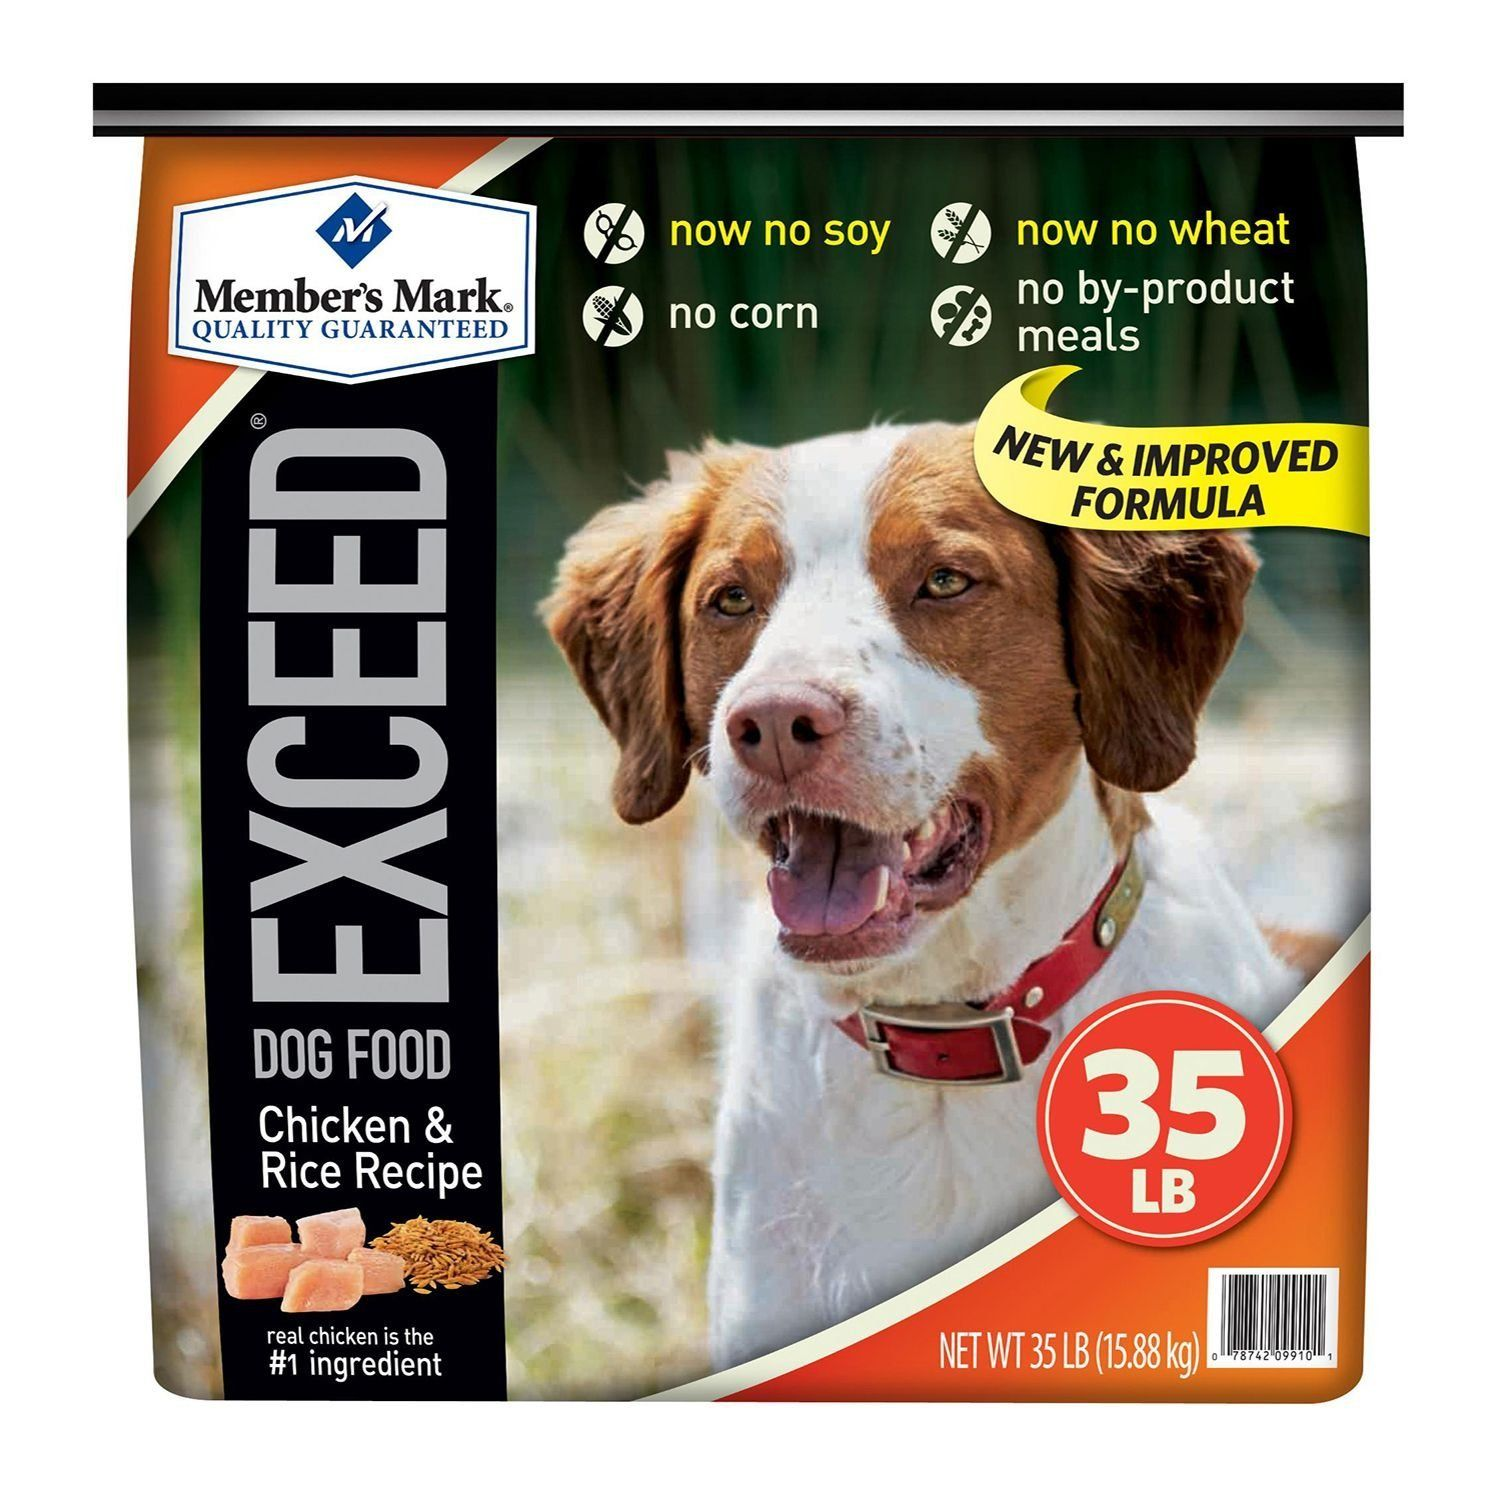 Member's Mark Exceed Dog Food, Chicken and Rice (35 lbs